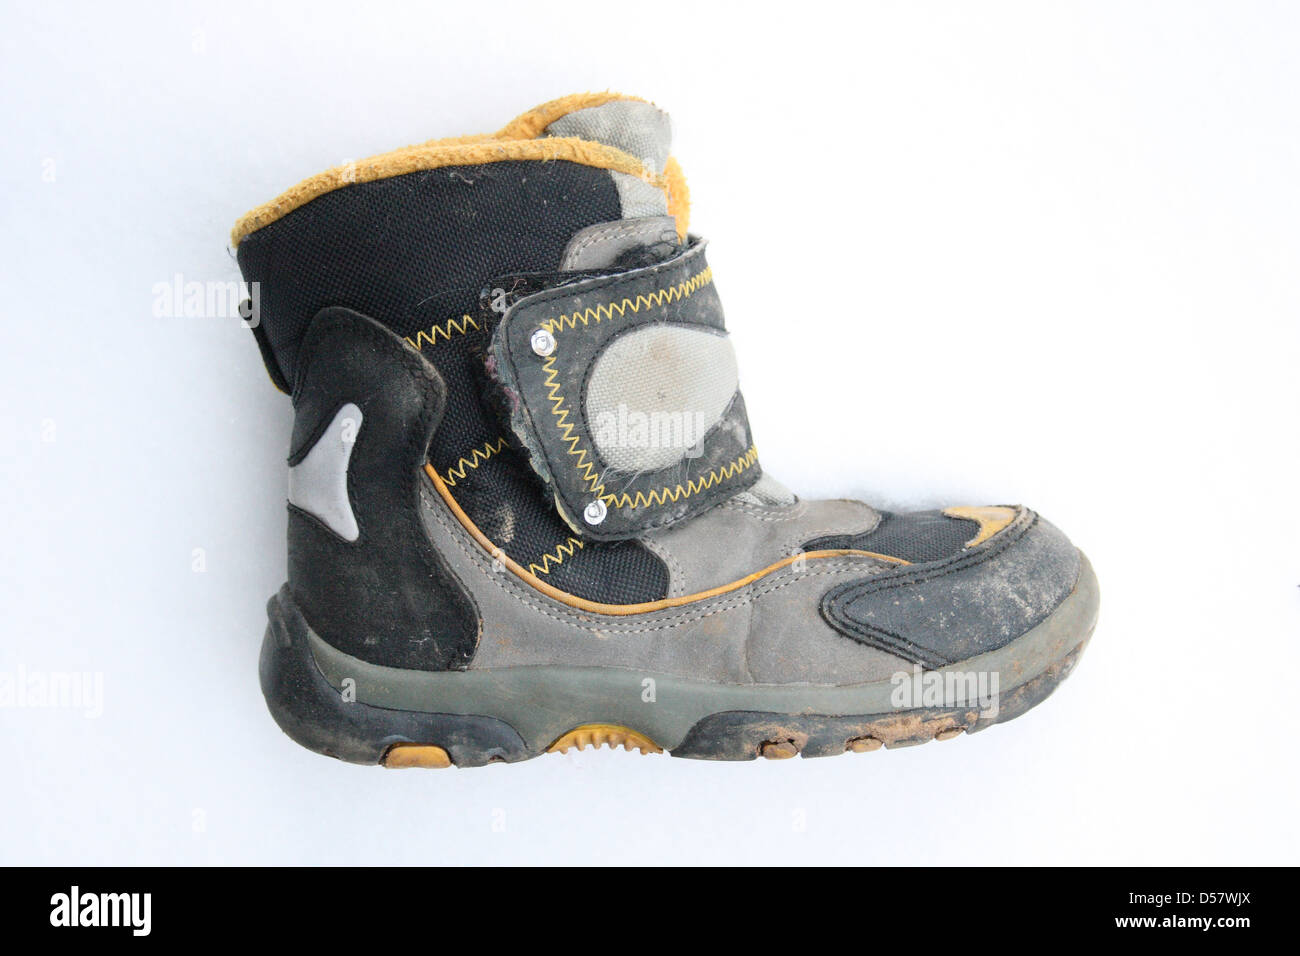 used winter boots - Stock Image